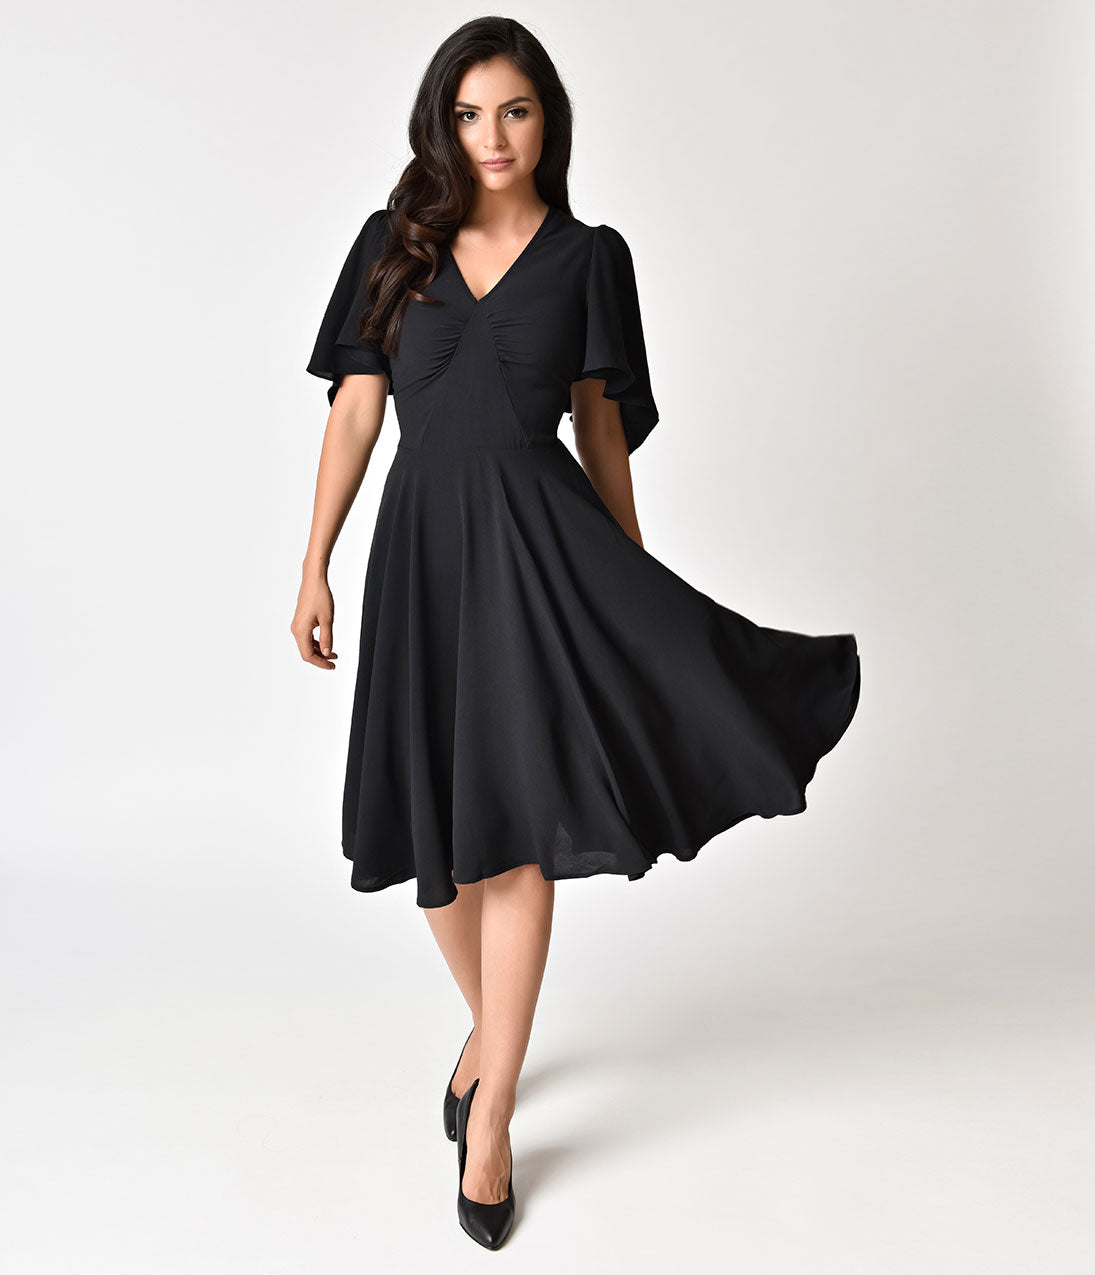 500 Vintage Style Dresses for Sale Hell Bunny 1940s Style Black Butterfly Sleeve Carolina Swing Dress $78.00 AT vintagedancer.com